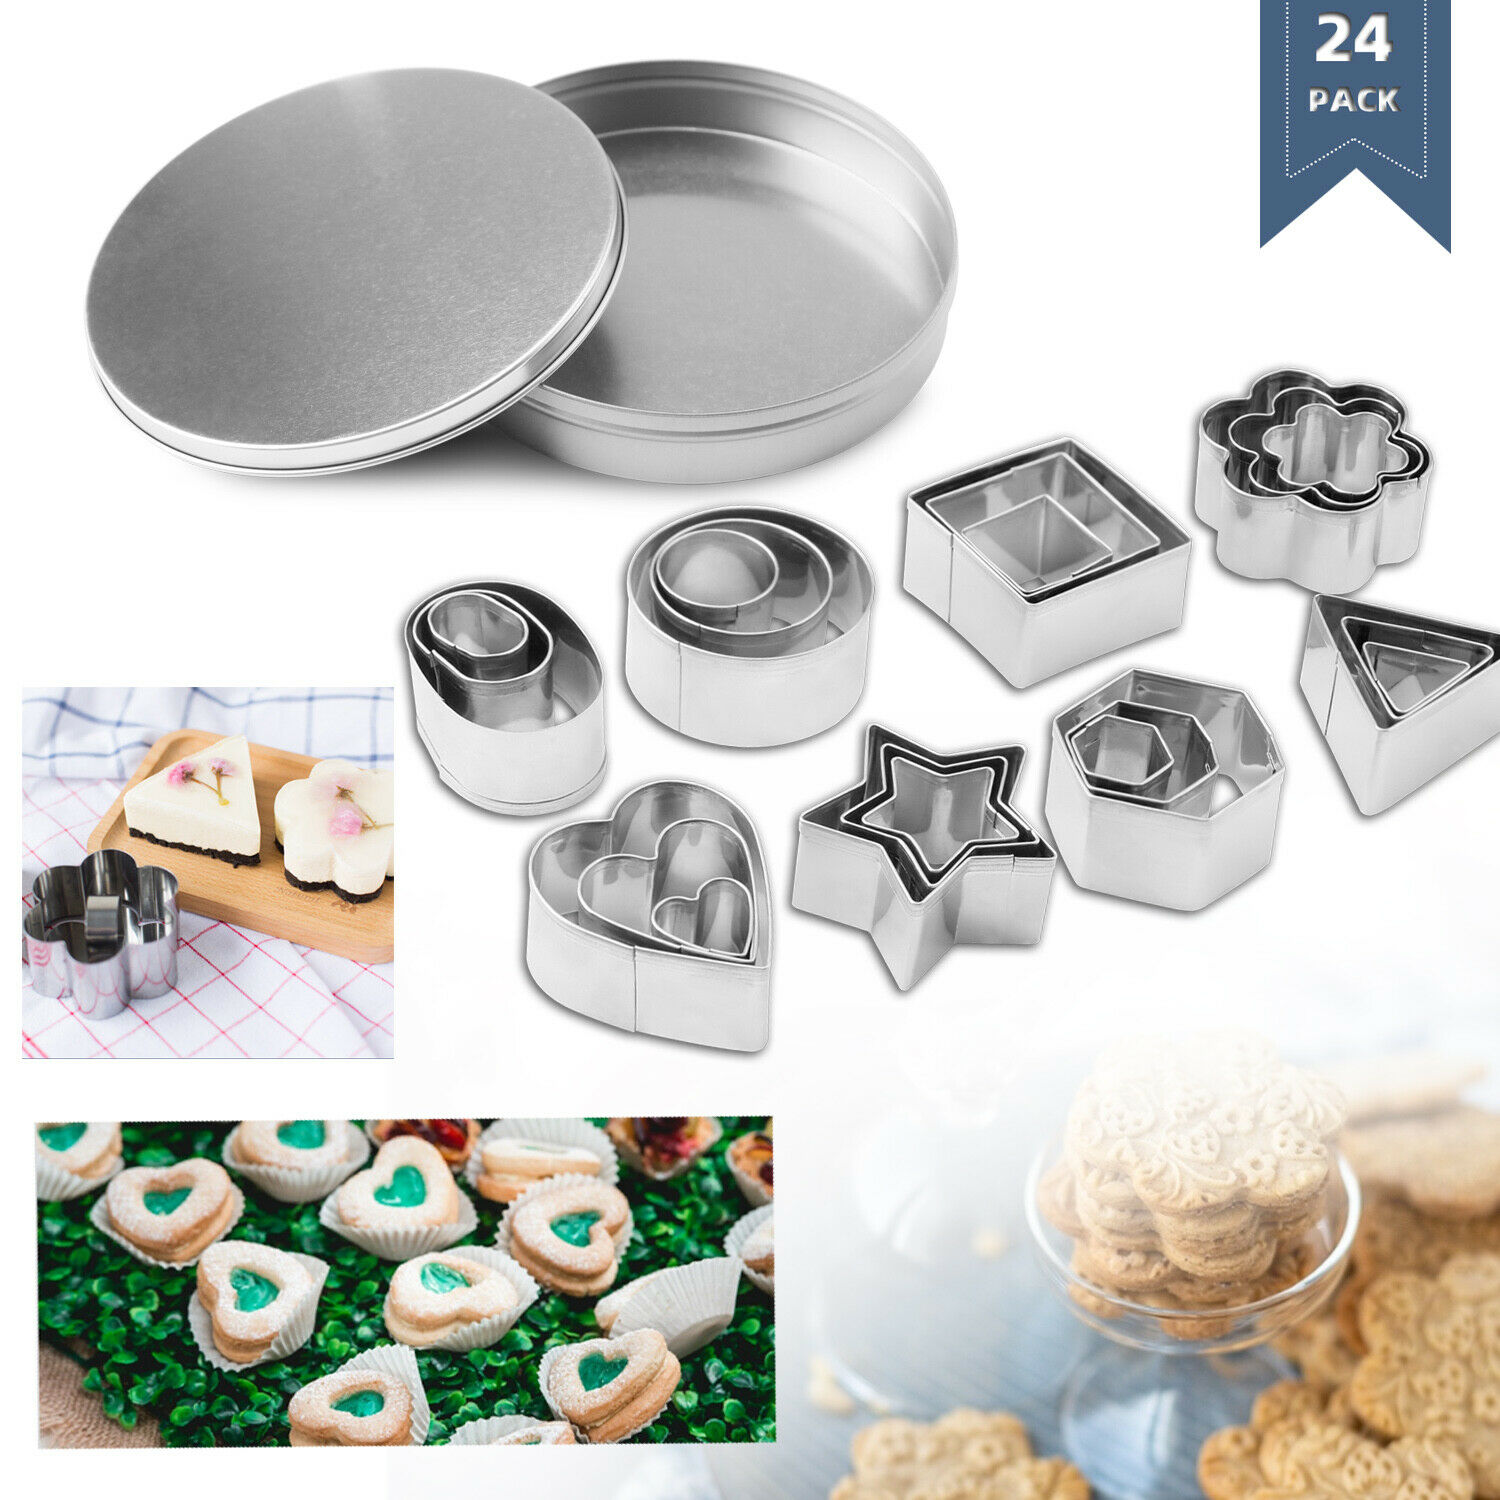 Stainless Steel Snowflake Cookie Cutter Biscuit Pastry Cake Mold Baking Tool Uti